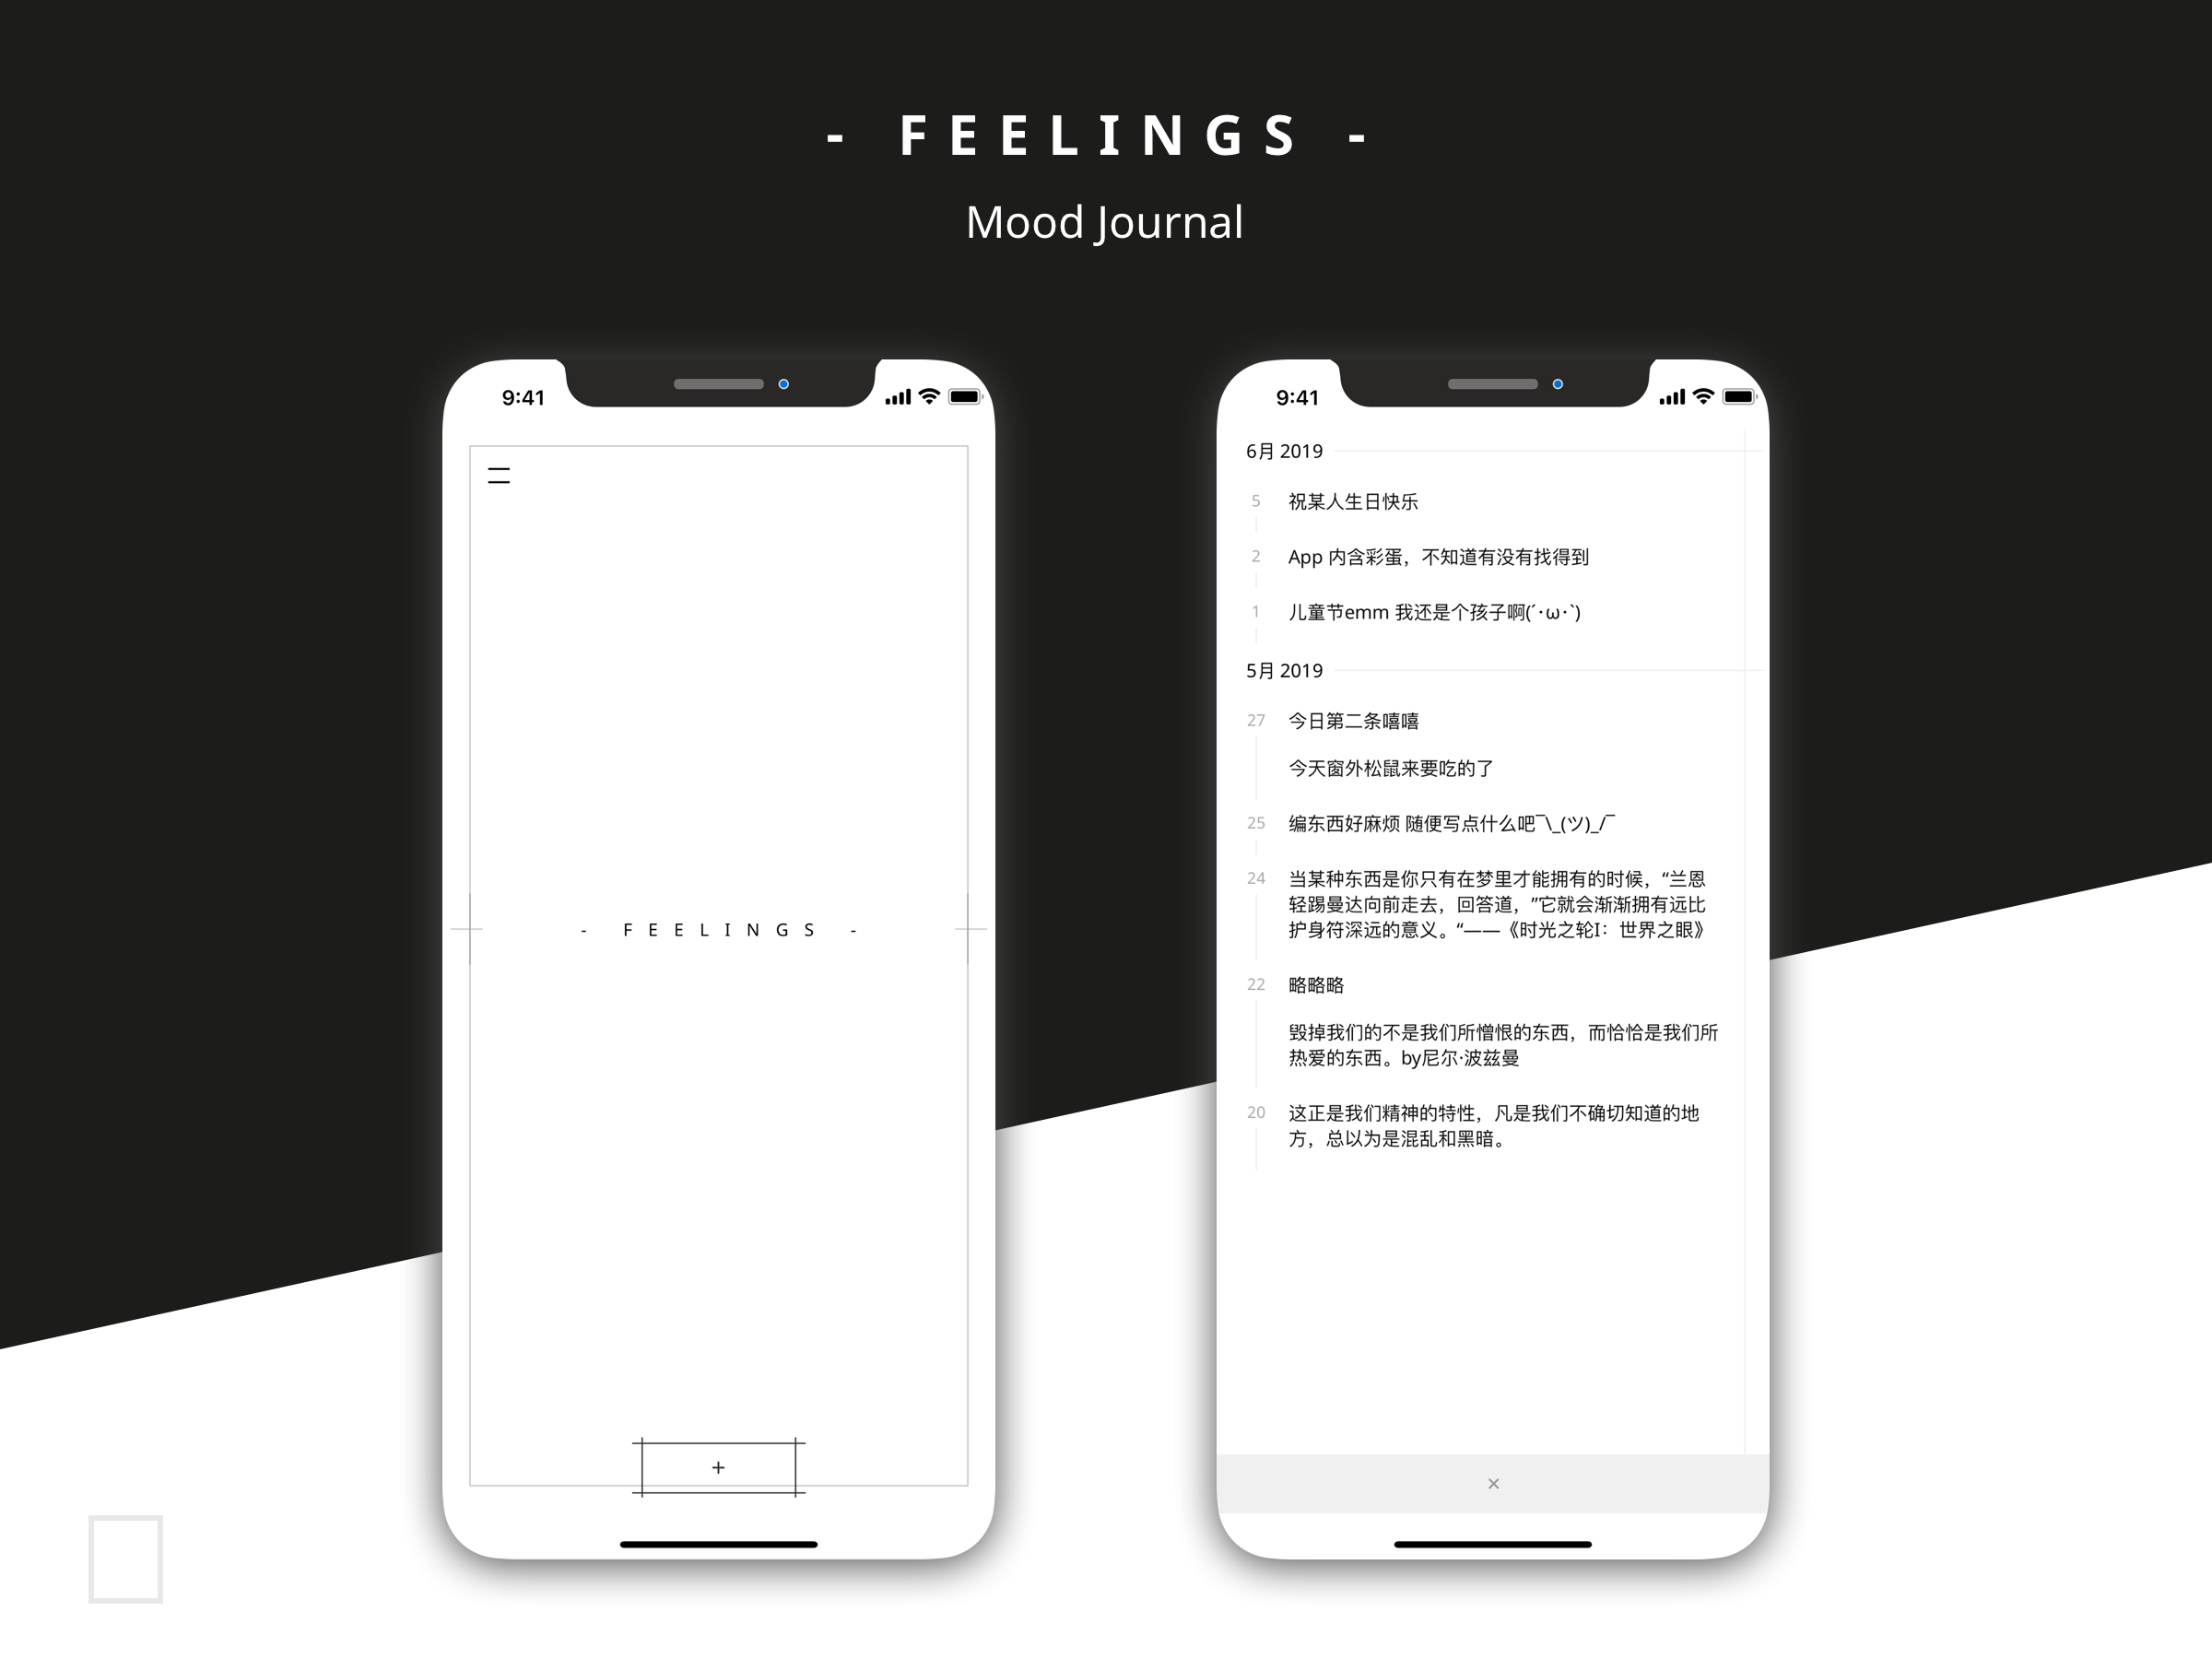 Feelings - Mood Journal App